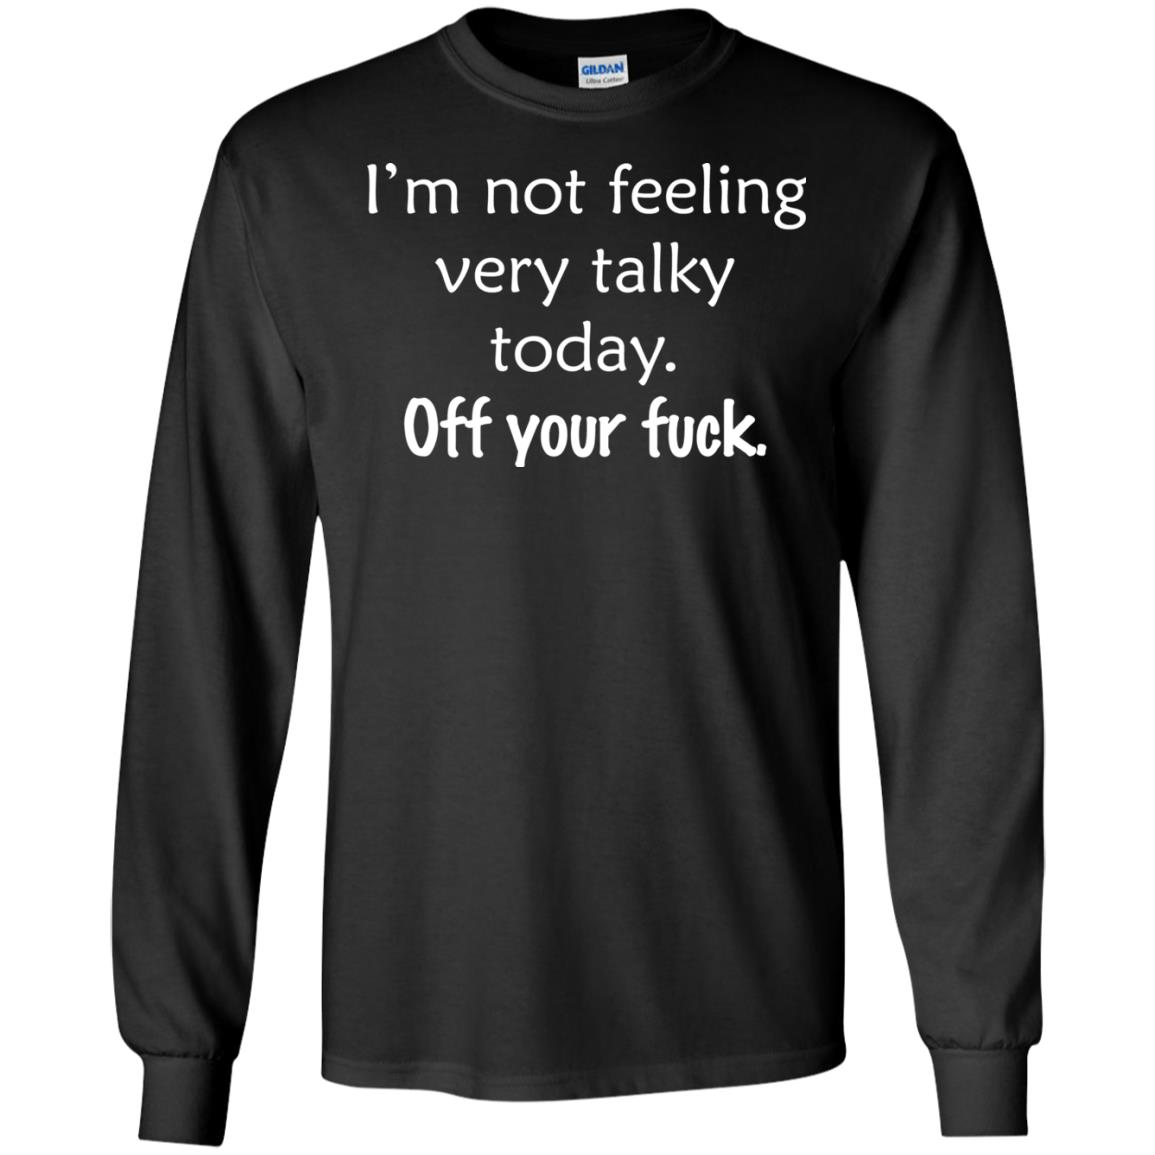 image 128 - I'm not feeling talky today Off your fuck t-shirt & sweater